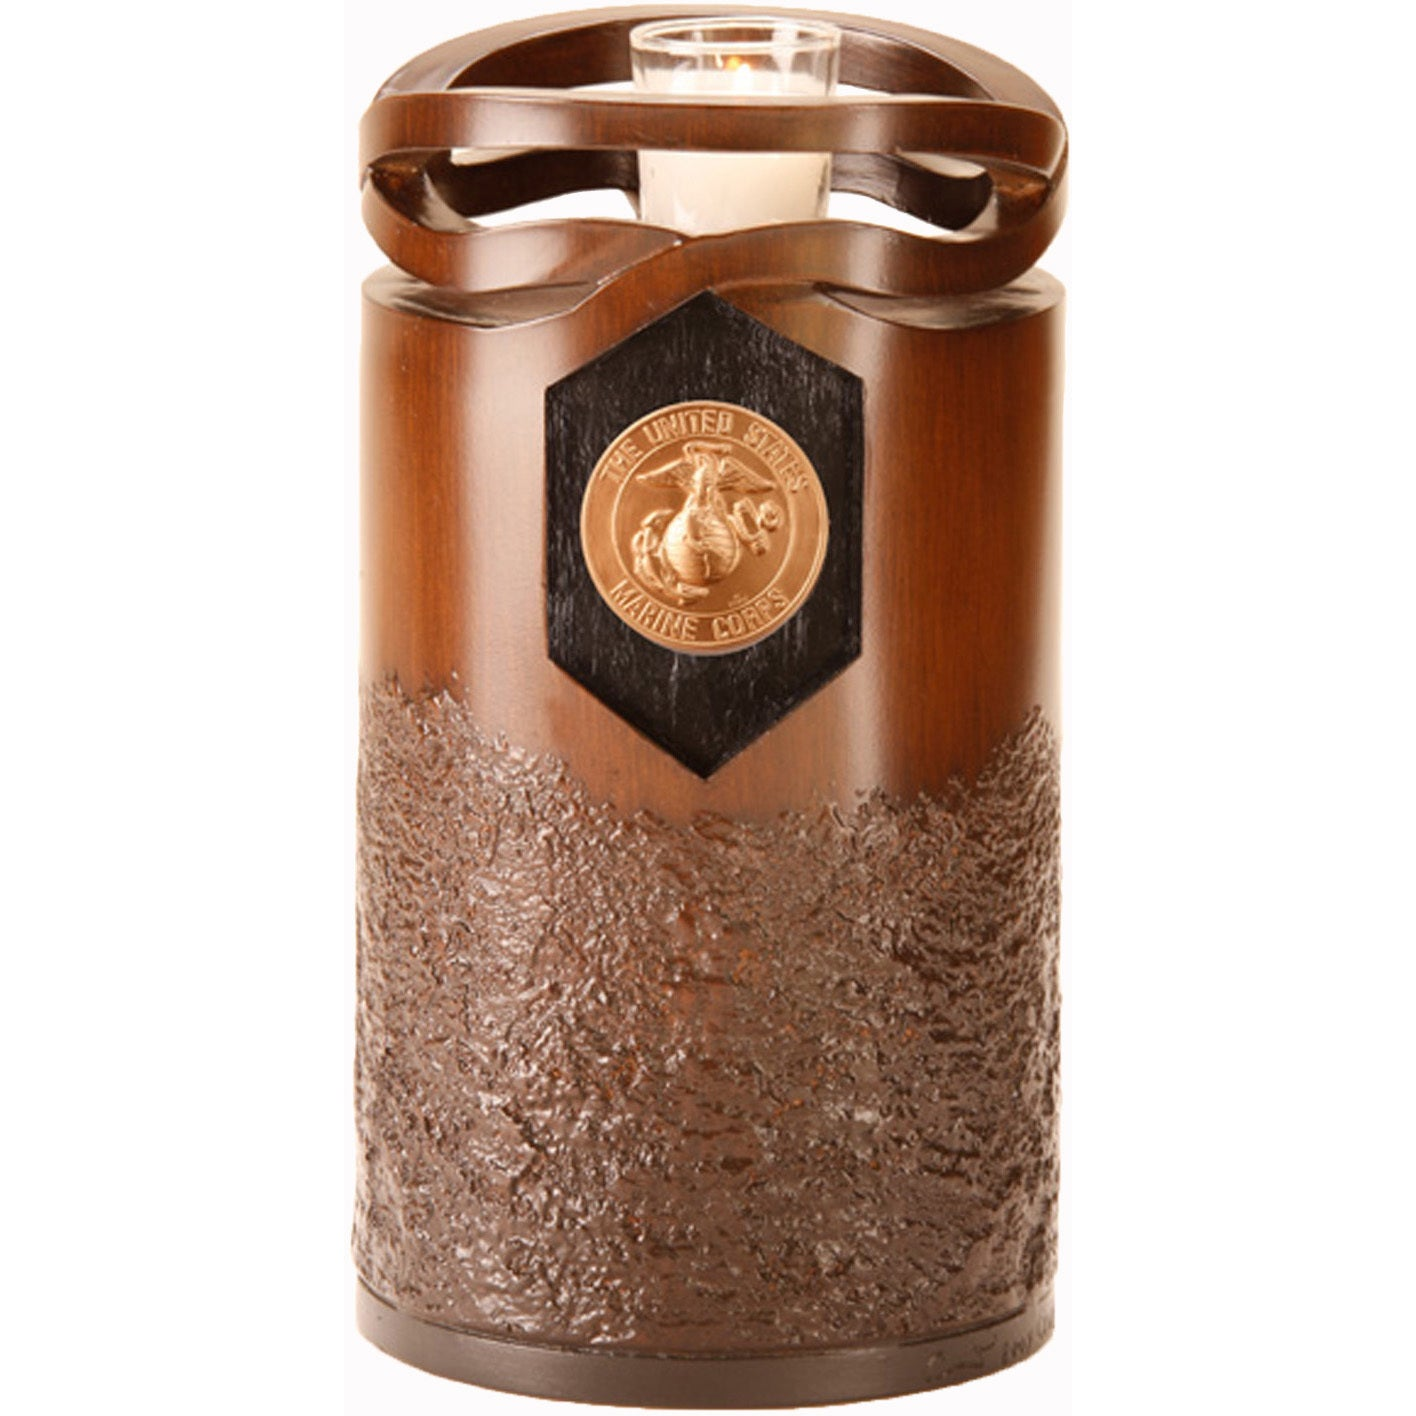 Urns by Canneto Infinity Wood Resin Marine Corps Urn